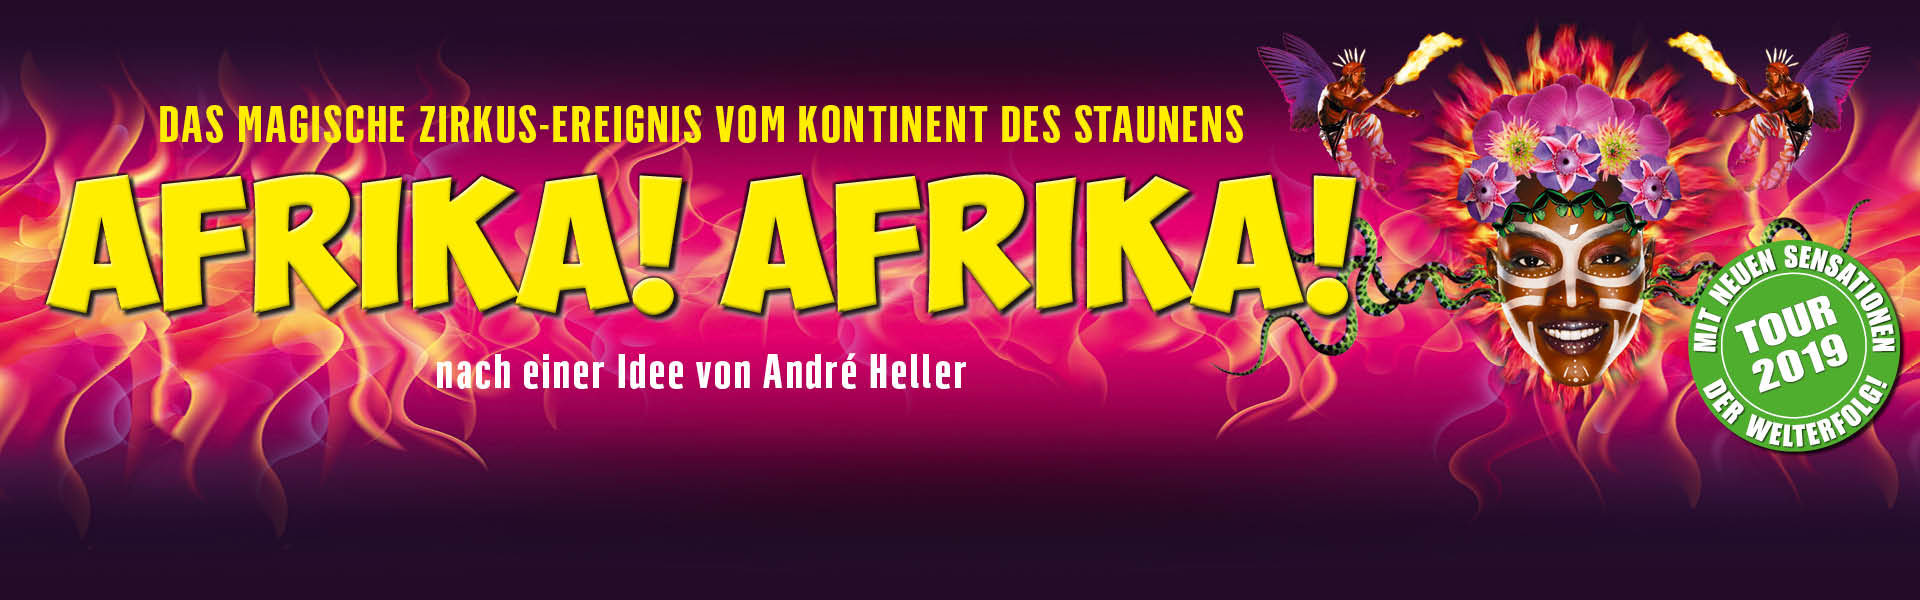 AFRIKA! AFRIKA! - Tour 2019 Mother Africa Circus